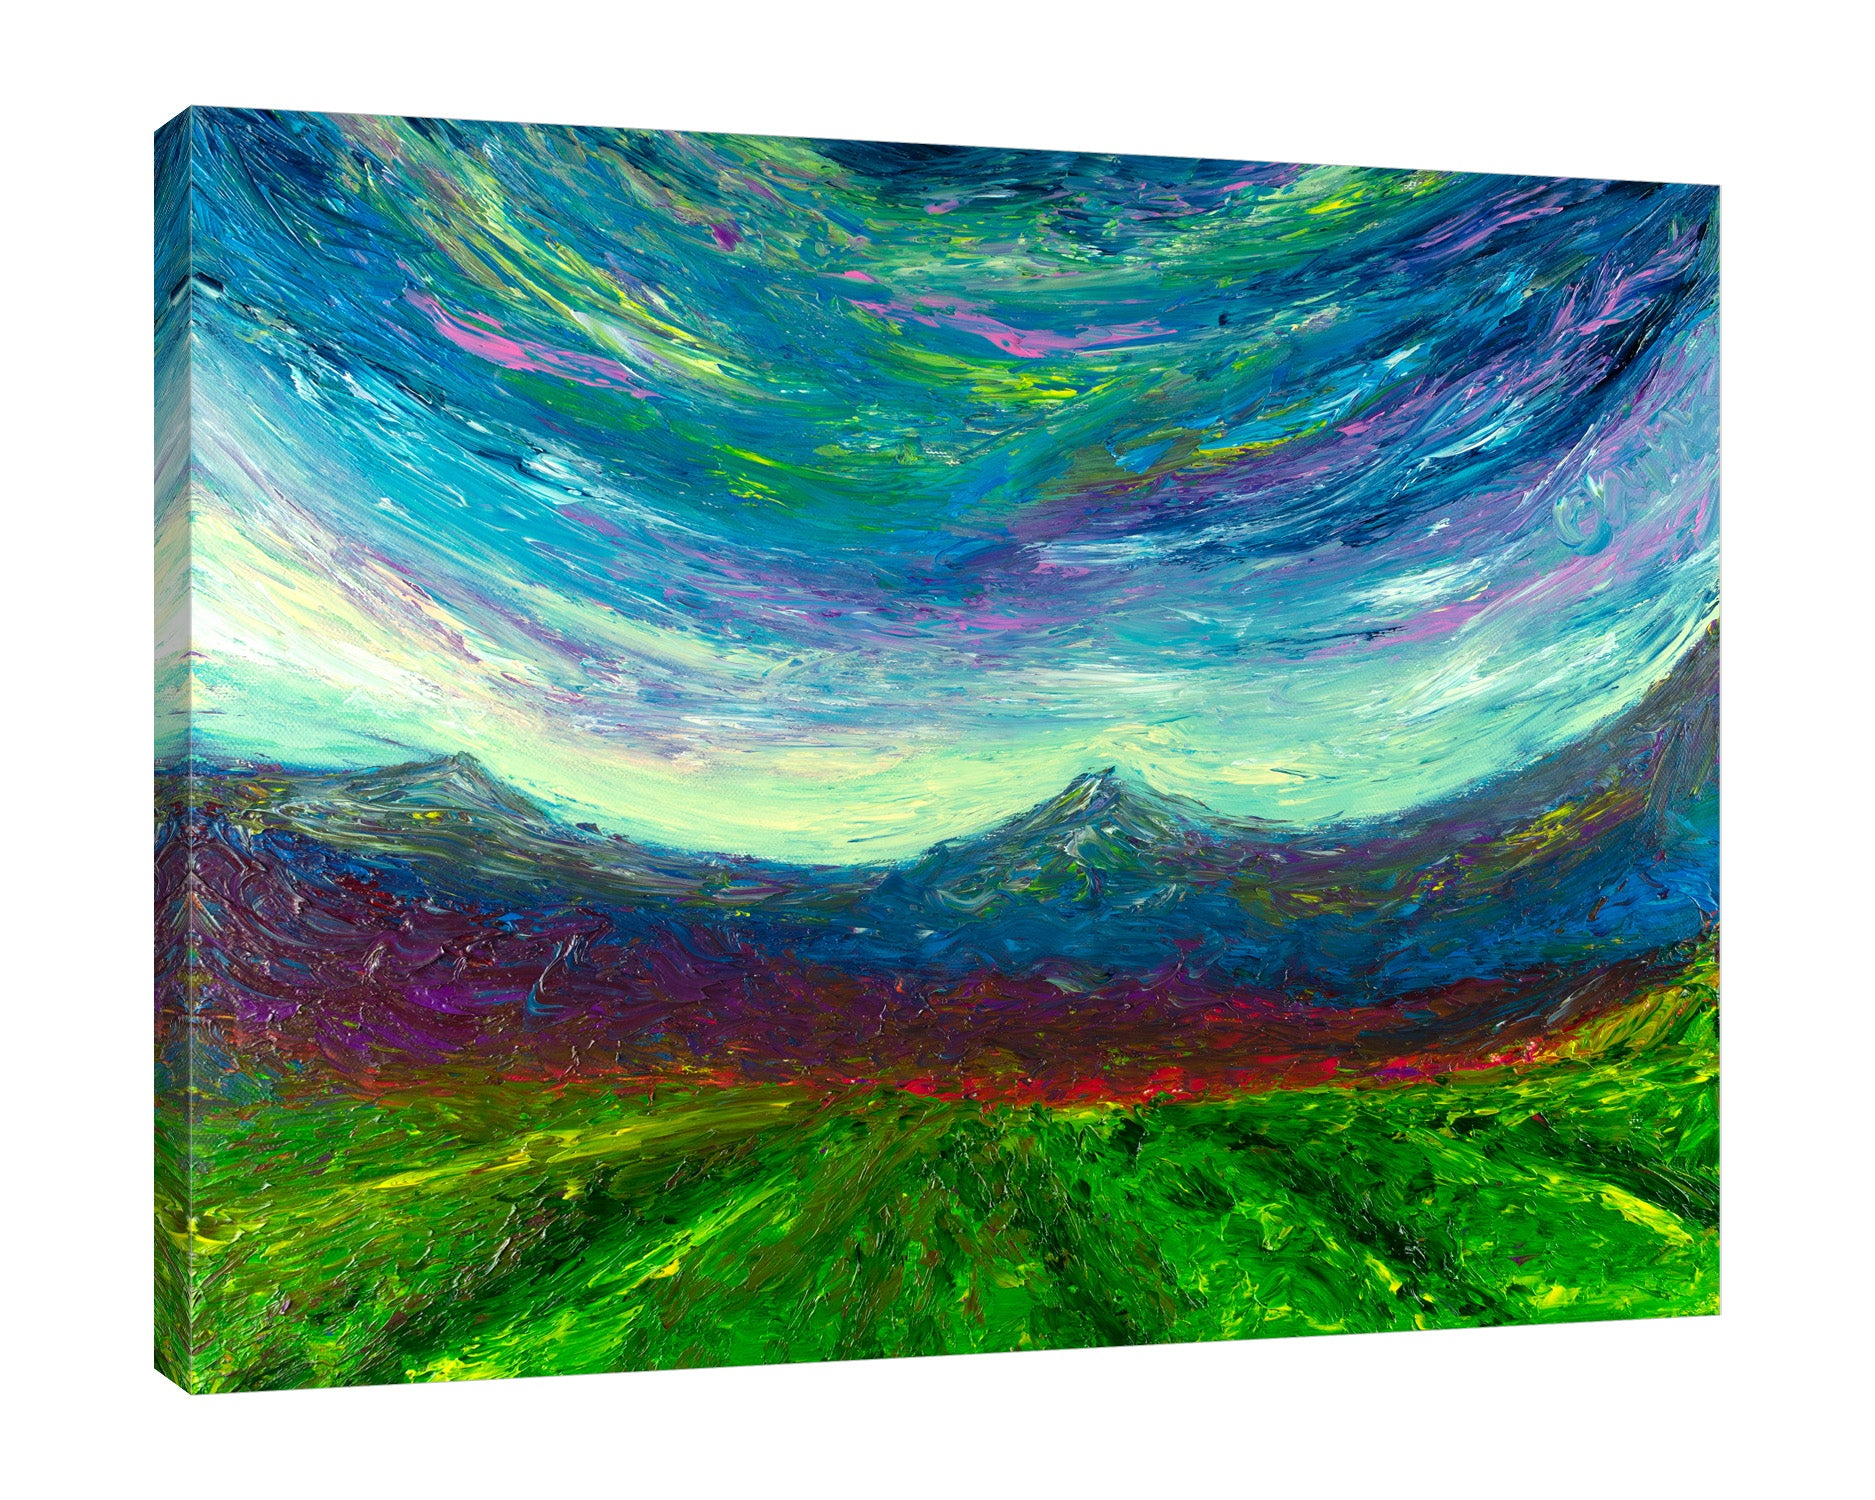 Chiara-Magni,Modern & Contemporary,Landscape & Nature,Finger-paint,blue,mountains,green,farm,landscape,white,red,skies,